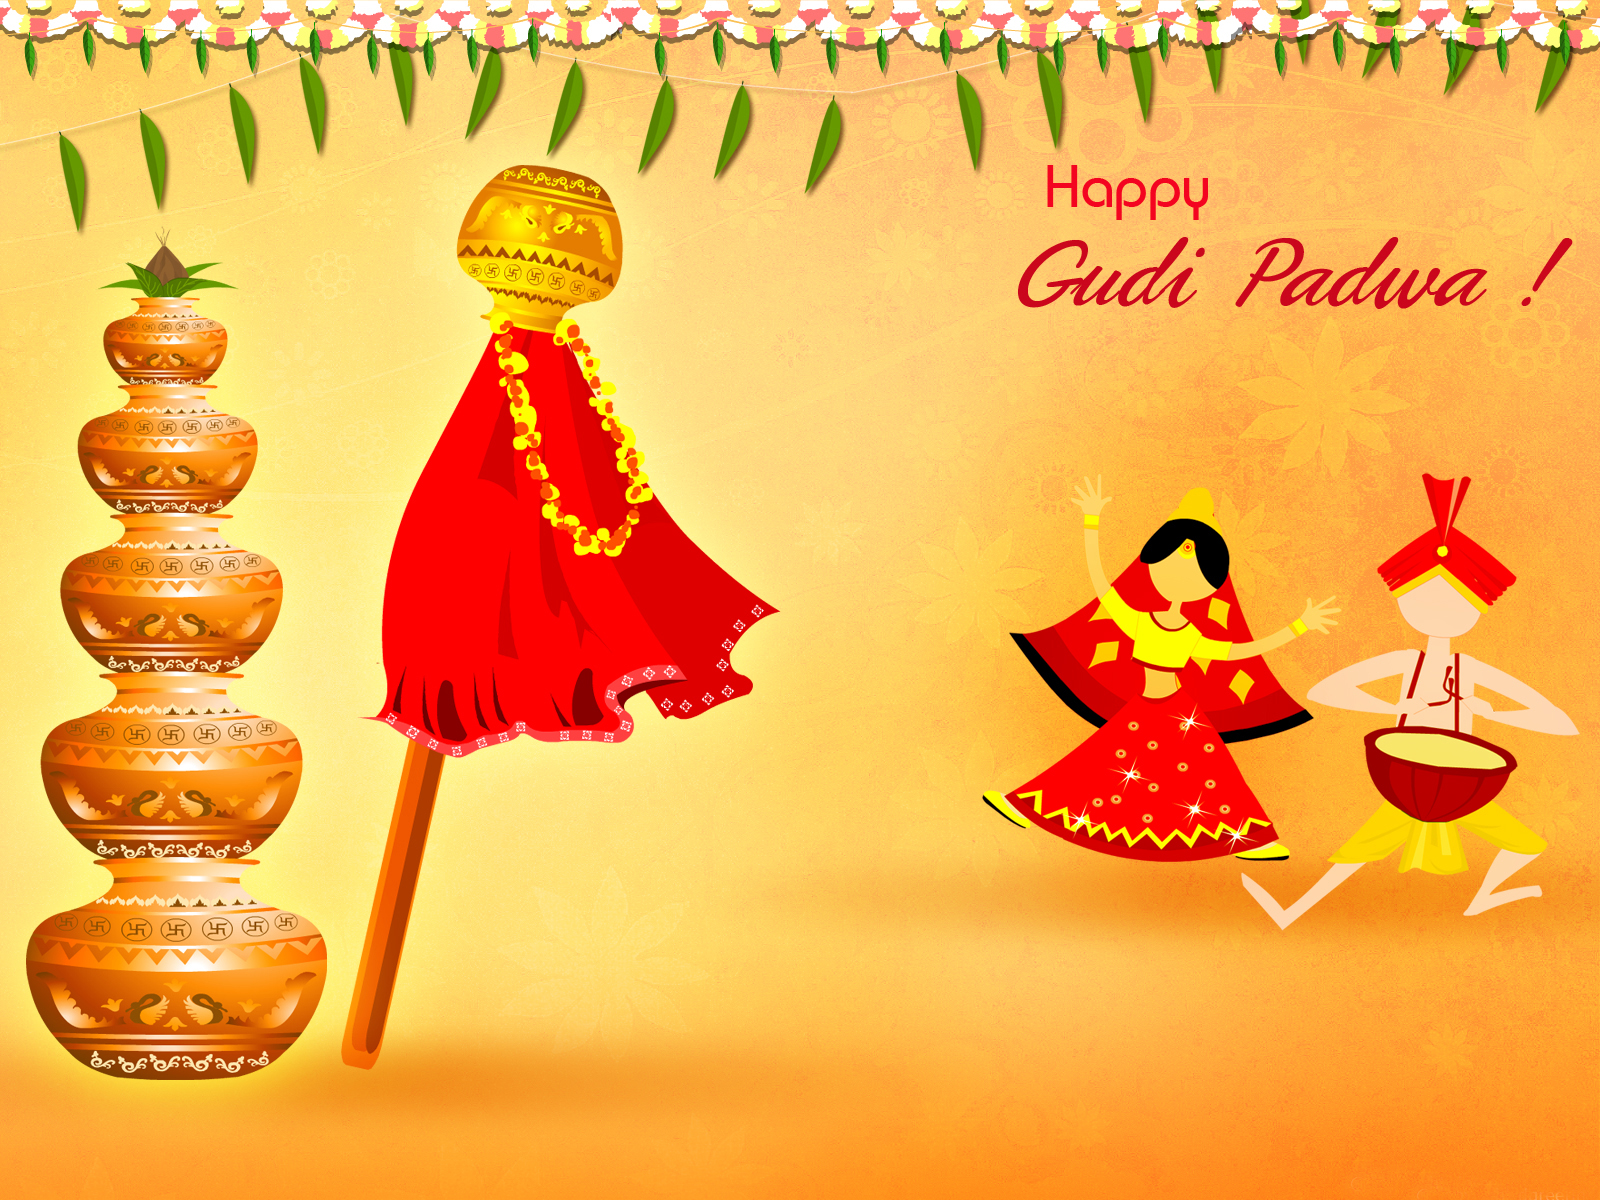 Happy Gudi Padwa 2018 Messages Quotes Wishes Sms Marathi Tamil